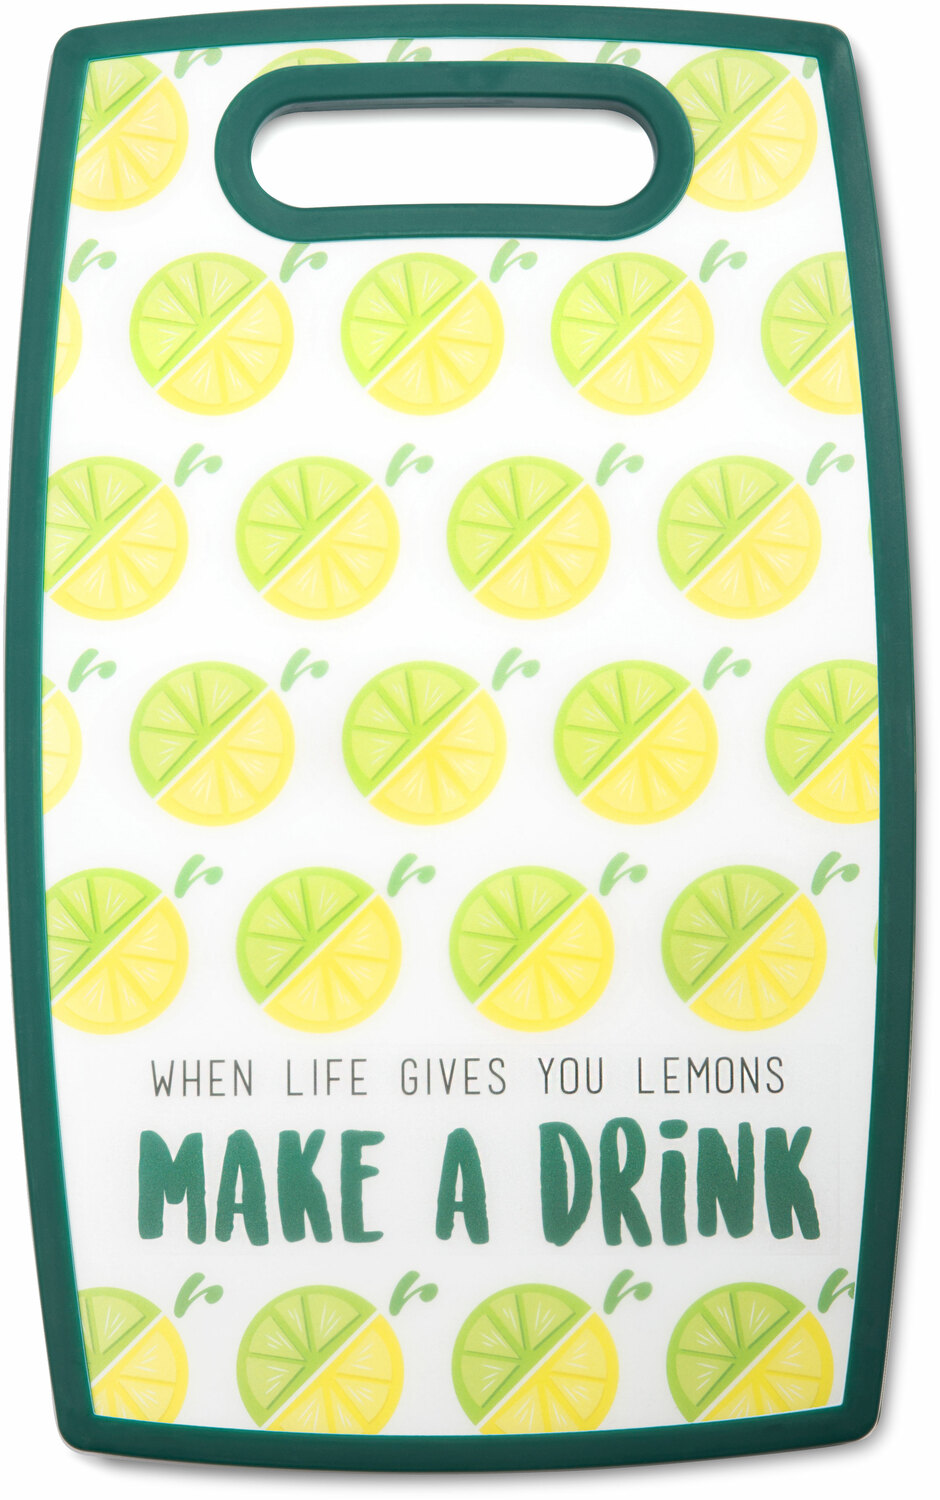 "Make a Drink by Livin' on the Wedge - Make a Drink - 9"" x 14.5"" Cutting Board"